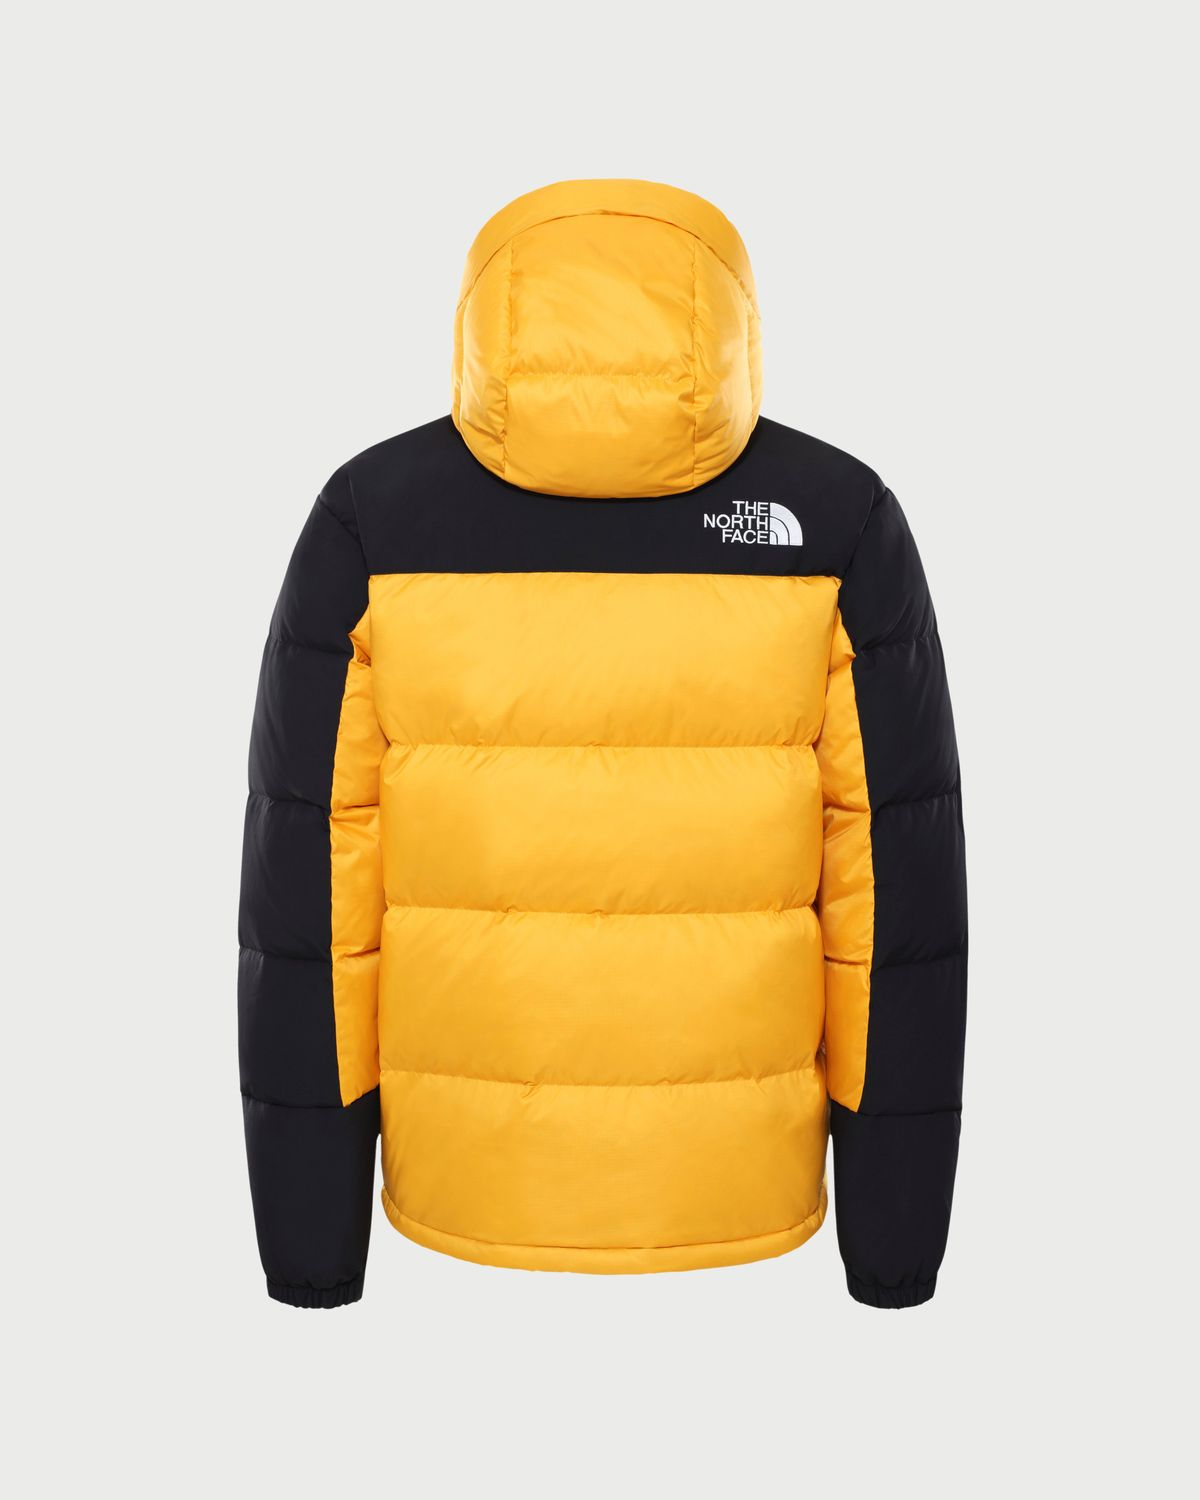 The North Face - Himalayan Down Jacket Peak Summit Gold Unisex - Image 2